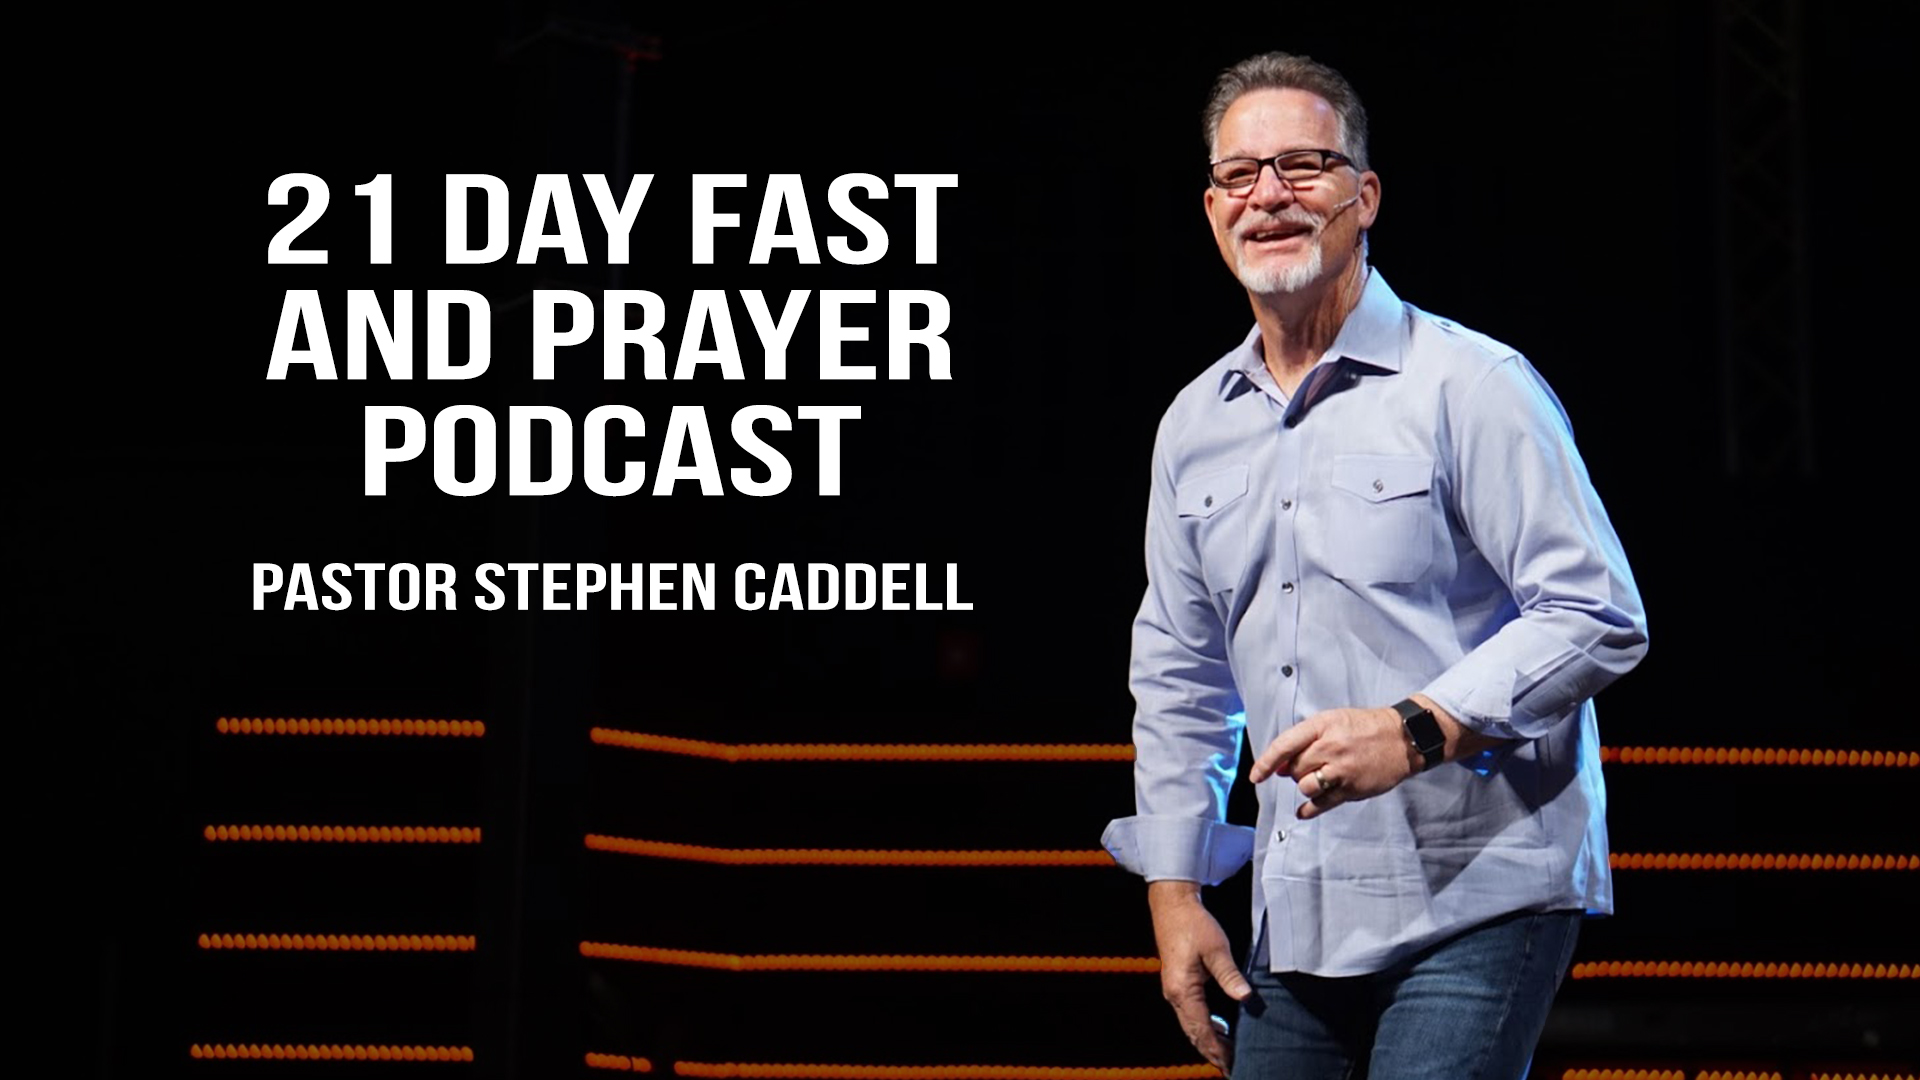 21 DAY FAST AND PRAYER -